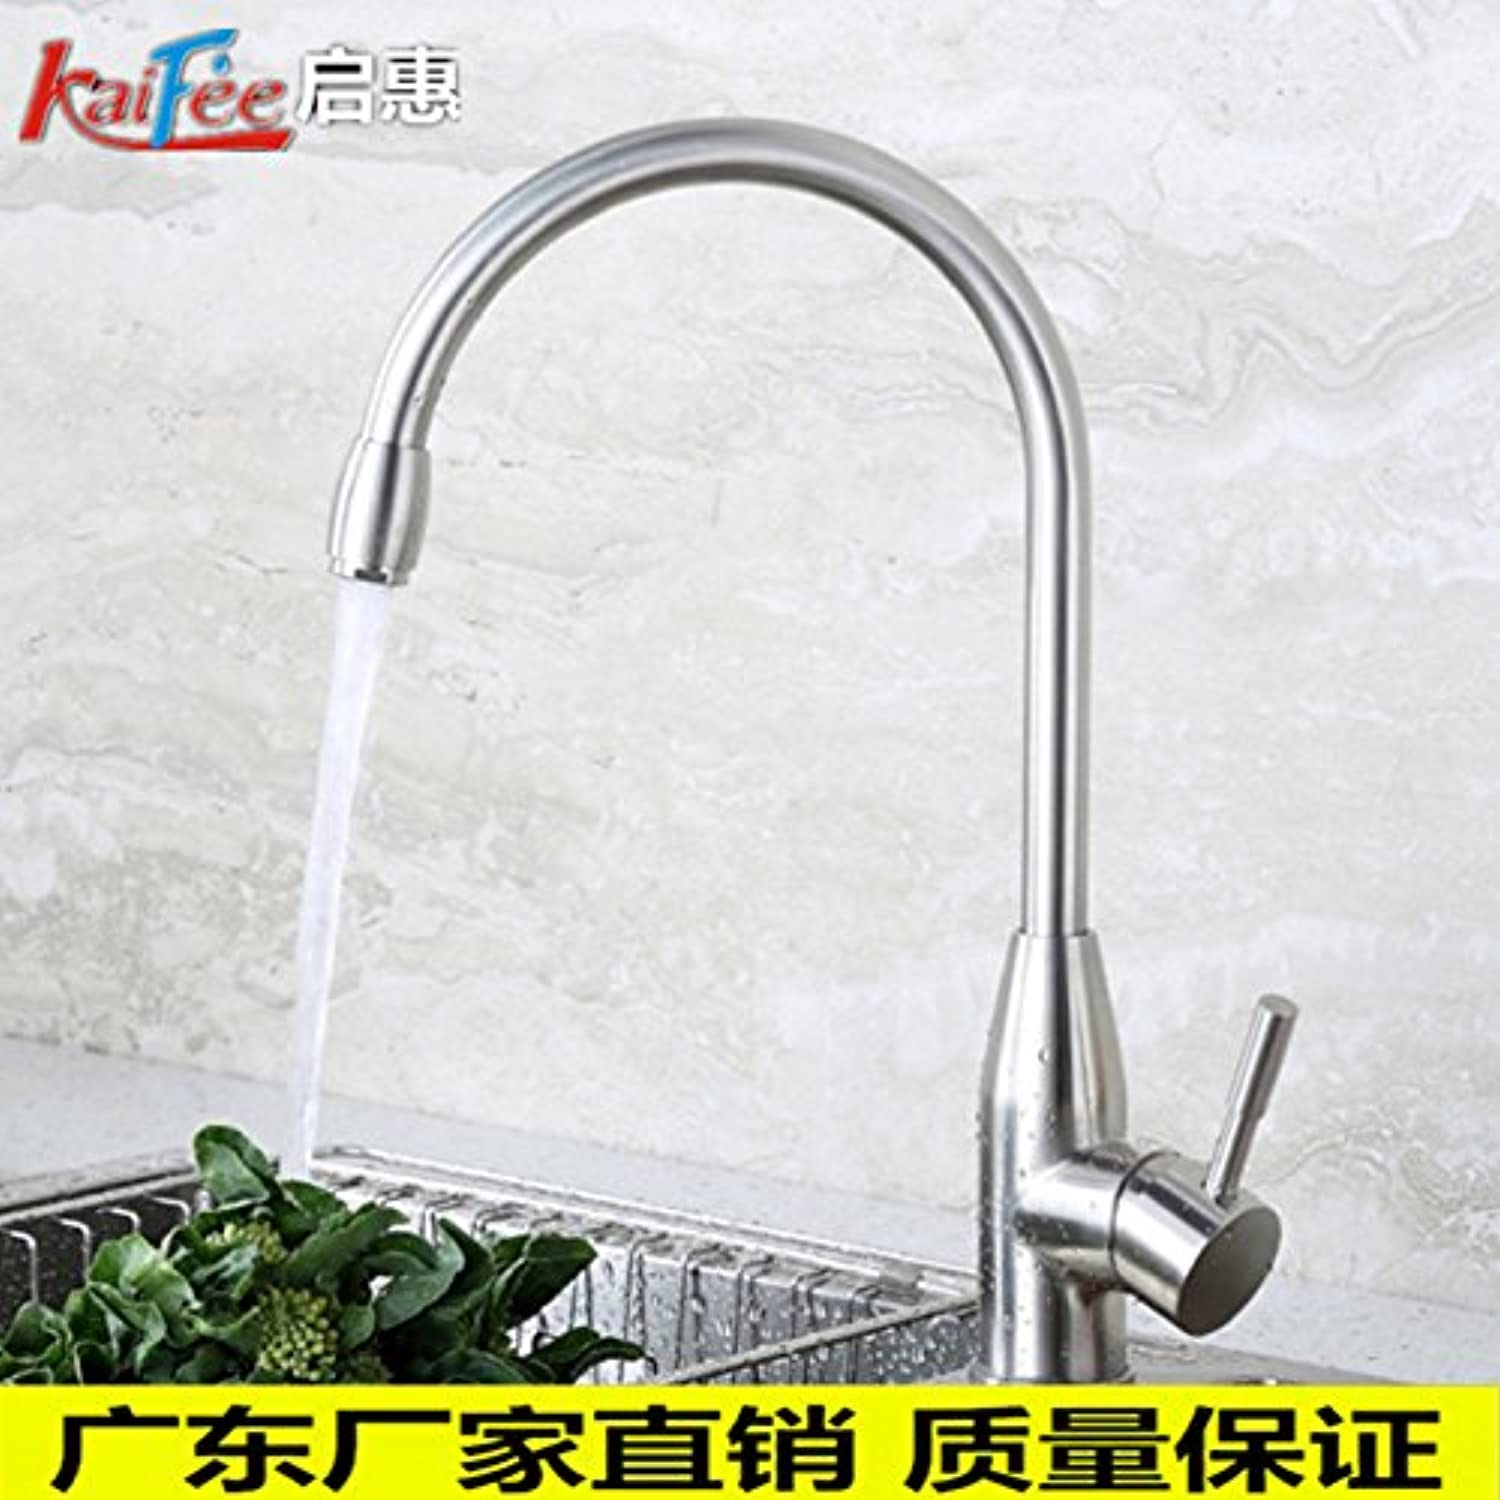 Hlluya Professional Sink Mixer Tap Stainless steel kitchen faucet 304 kitchen wash basin of hot and cold dishes sit-in brushed sink washing dishes pool fittings, bullets dish tub faucet no hose